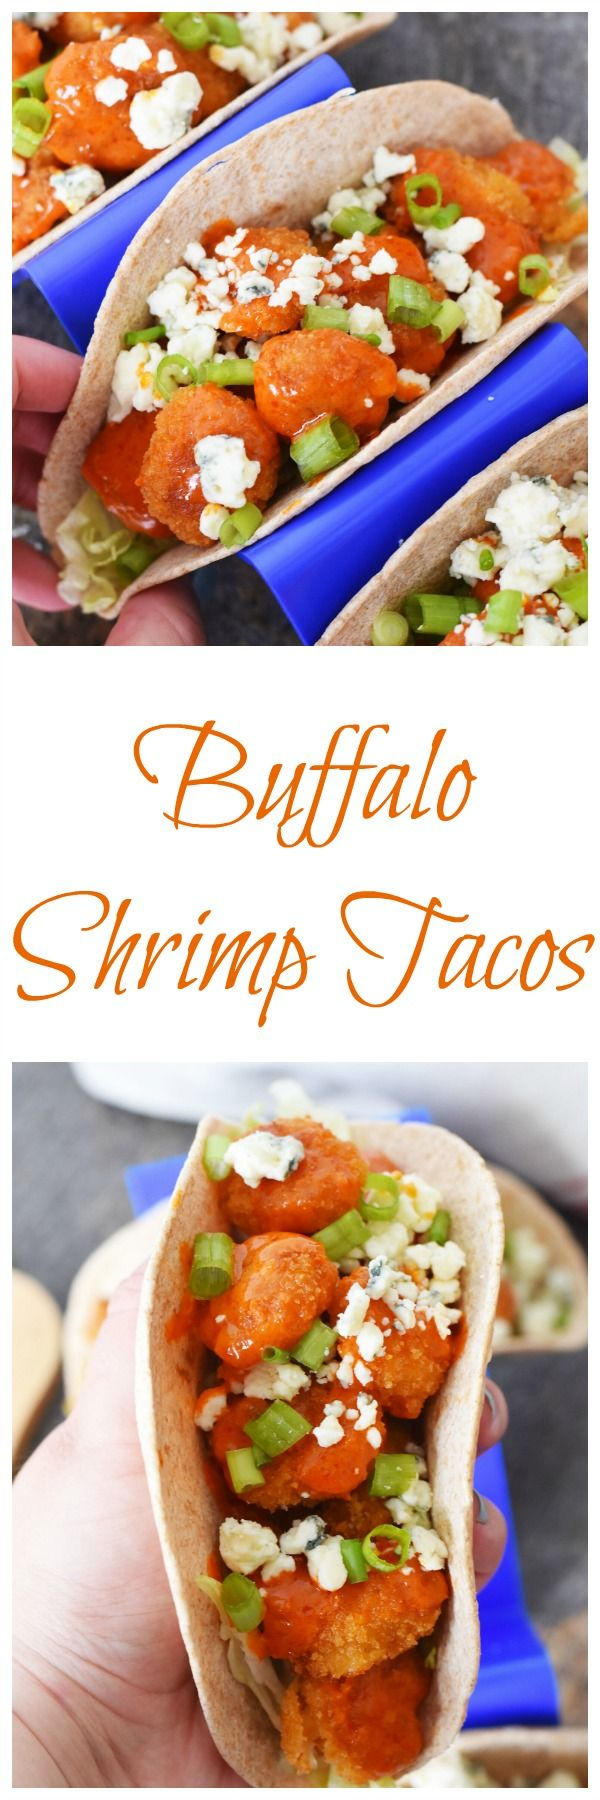 Quick and Tasty Buffalo Shrimp Tacos-A quick meal idea, loaded with so much flavor! Ideal for quick summer meals when time is short, but you want flavor! #AD @GortonsSeafood